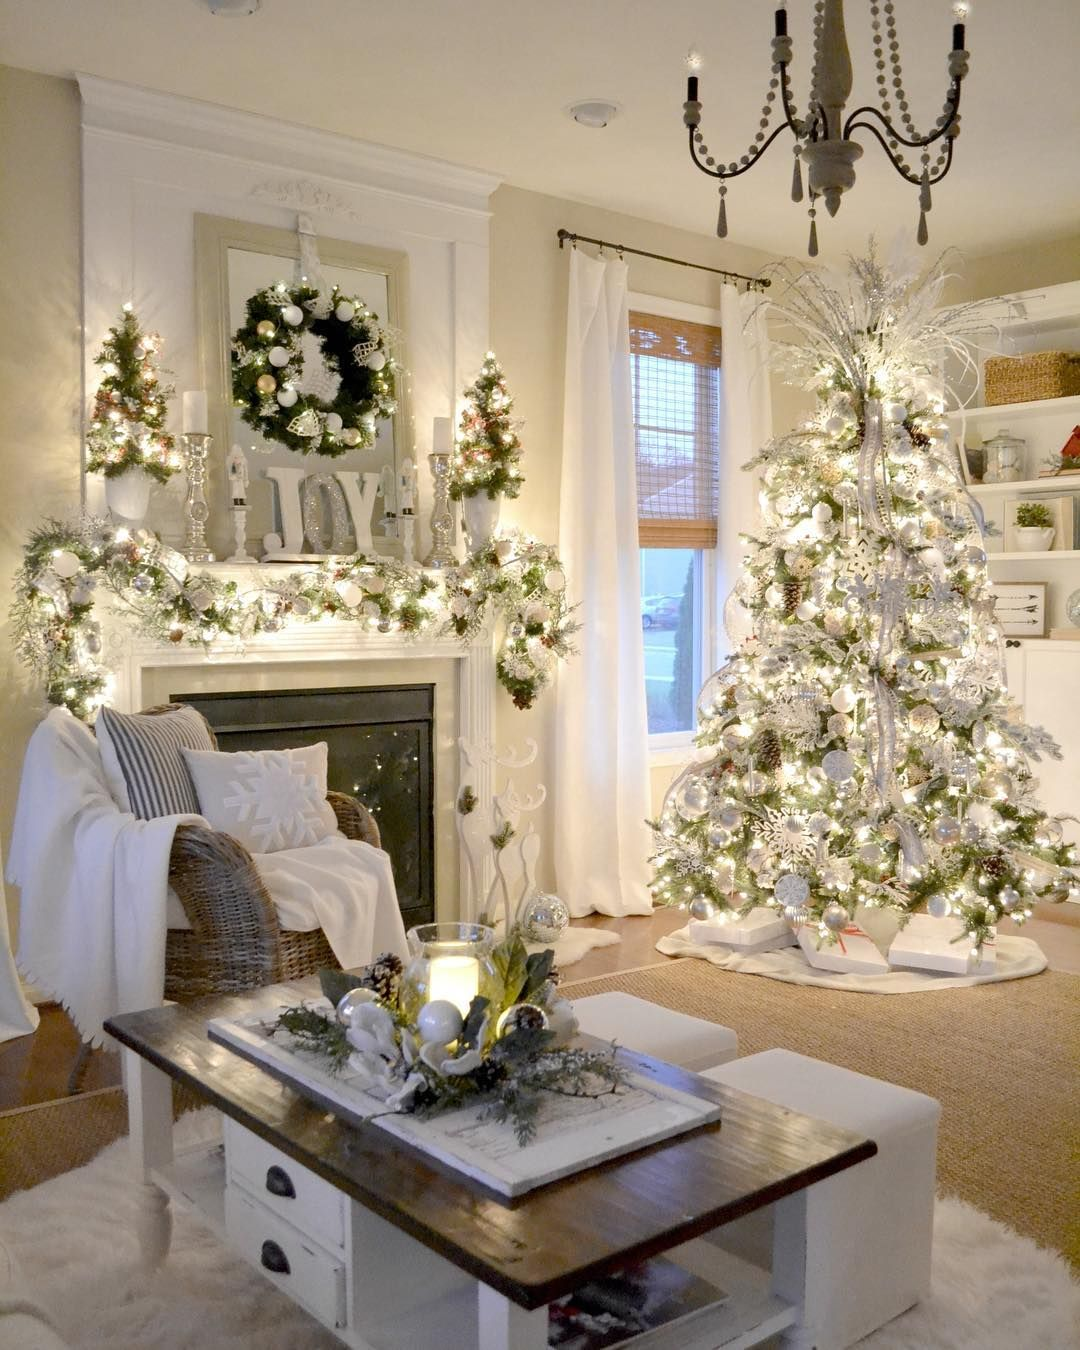 Christmas decor and curtain rod bracket ideas to match in white interior